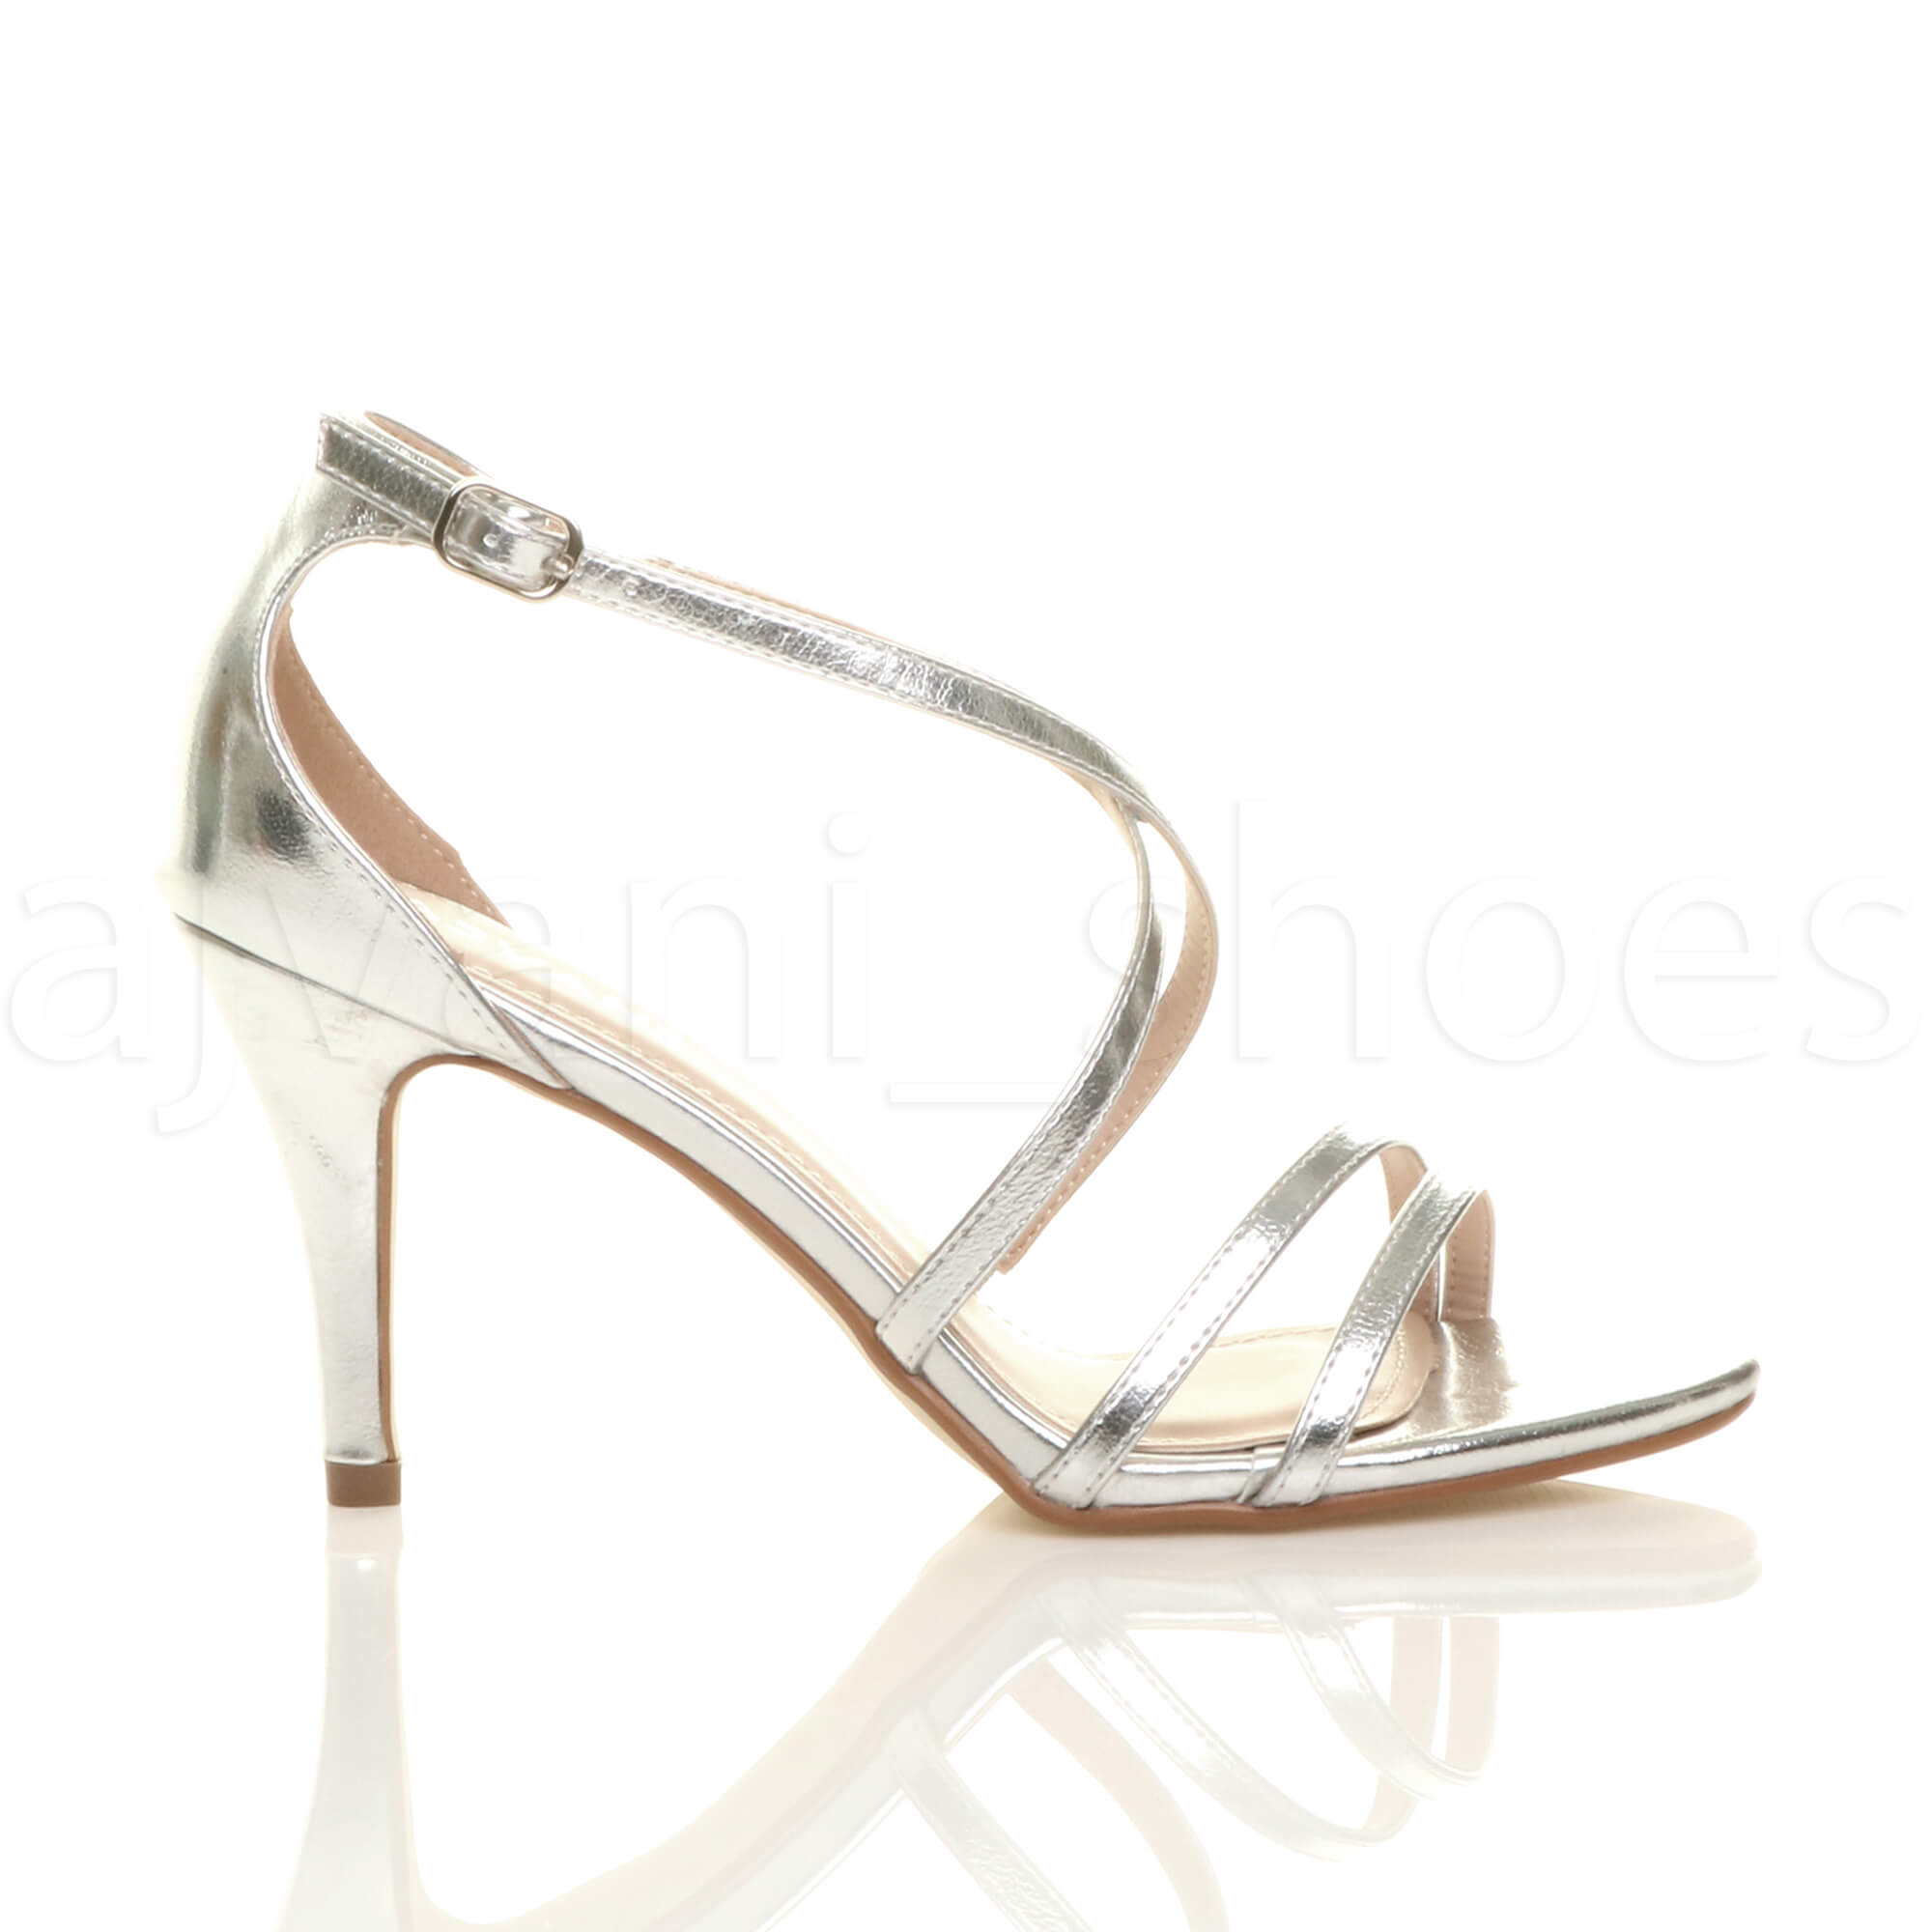 WOMENS-LADIES-MID-HIGH-HEEL-STRAPPY-CROSSOVER-WEDDING-PROM-SANDALS-SHOES-SIZE thumbnail 150